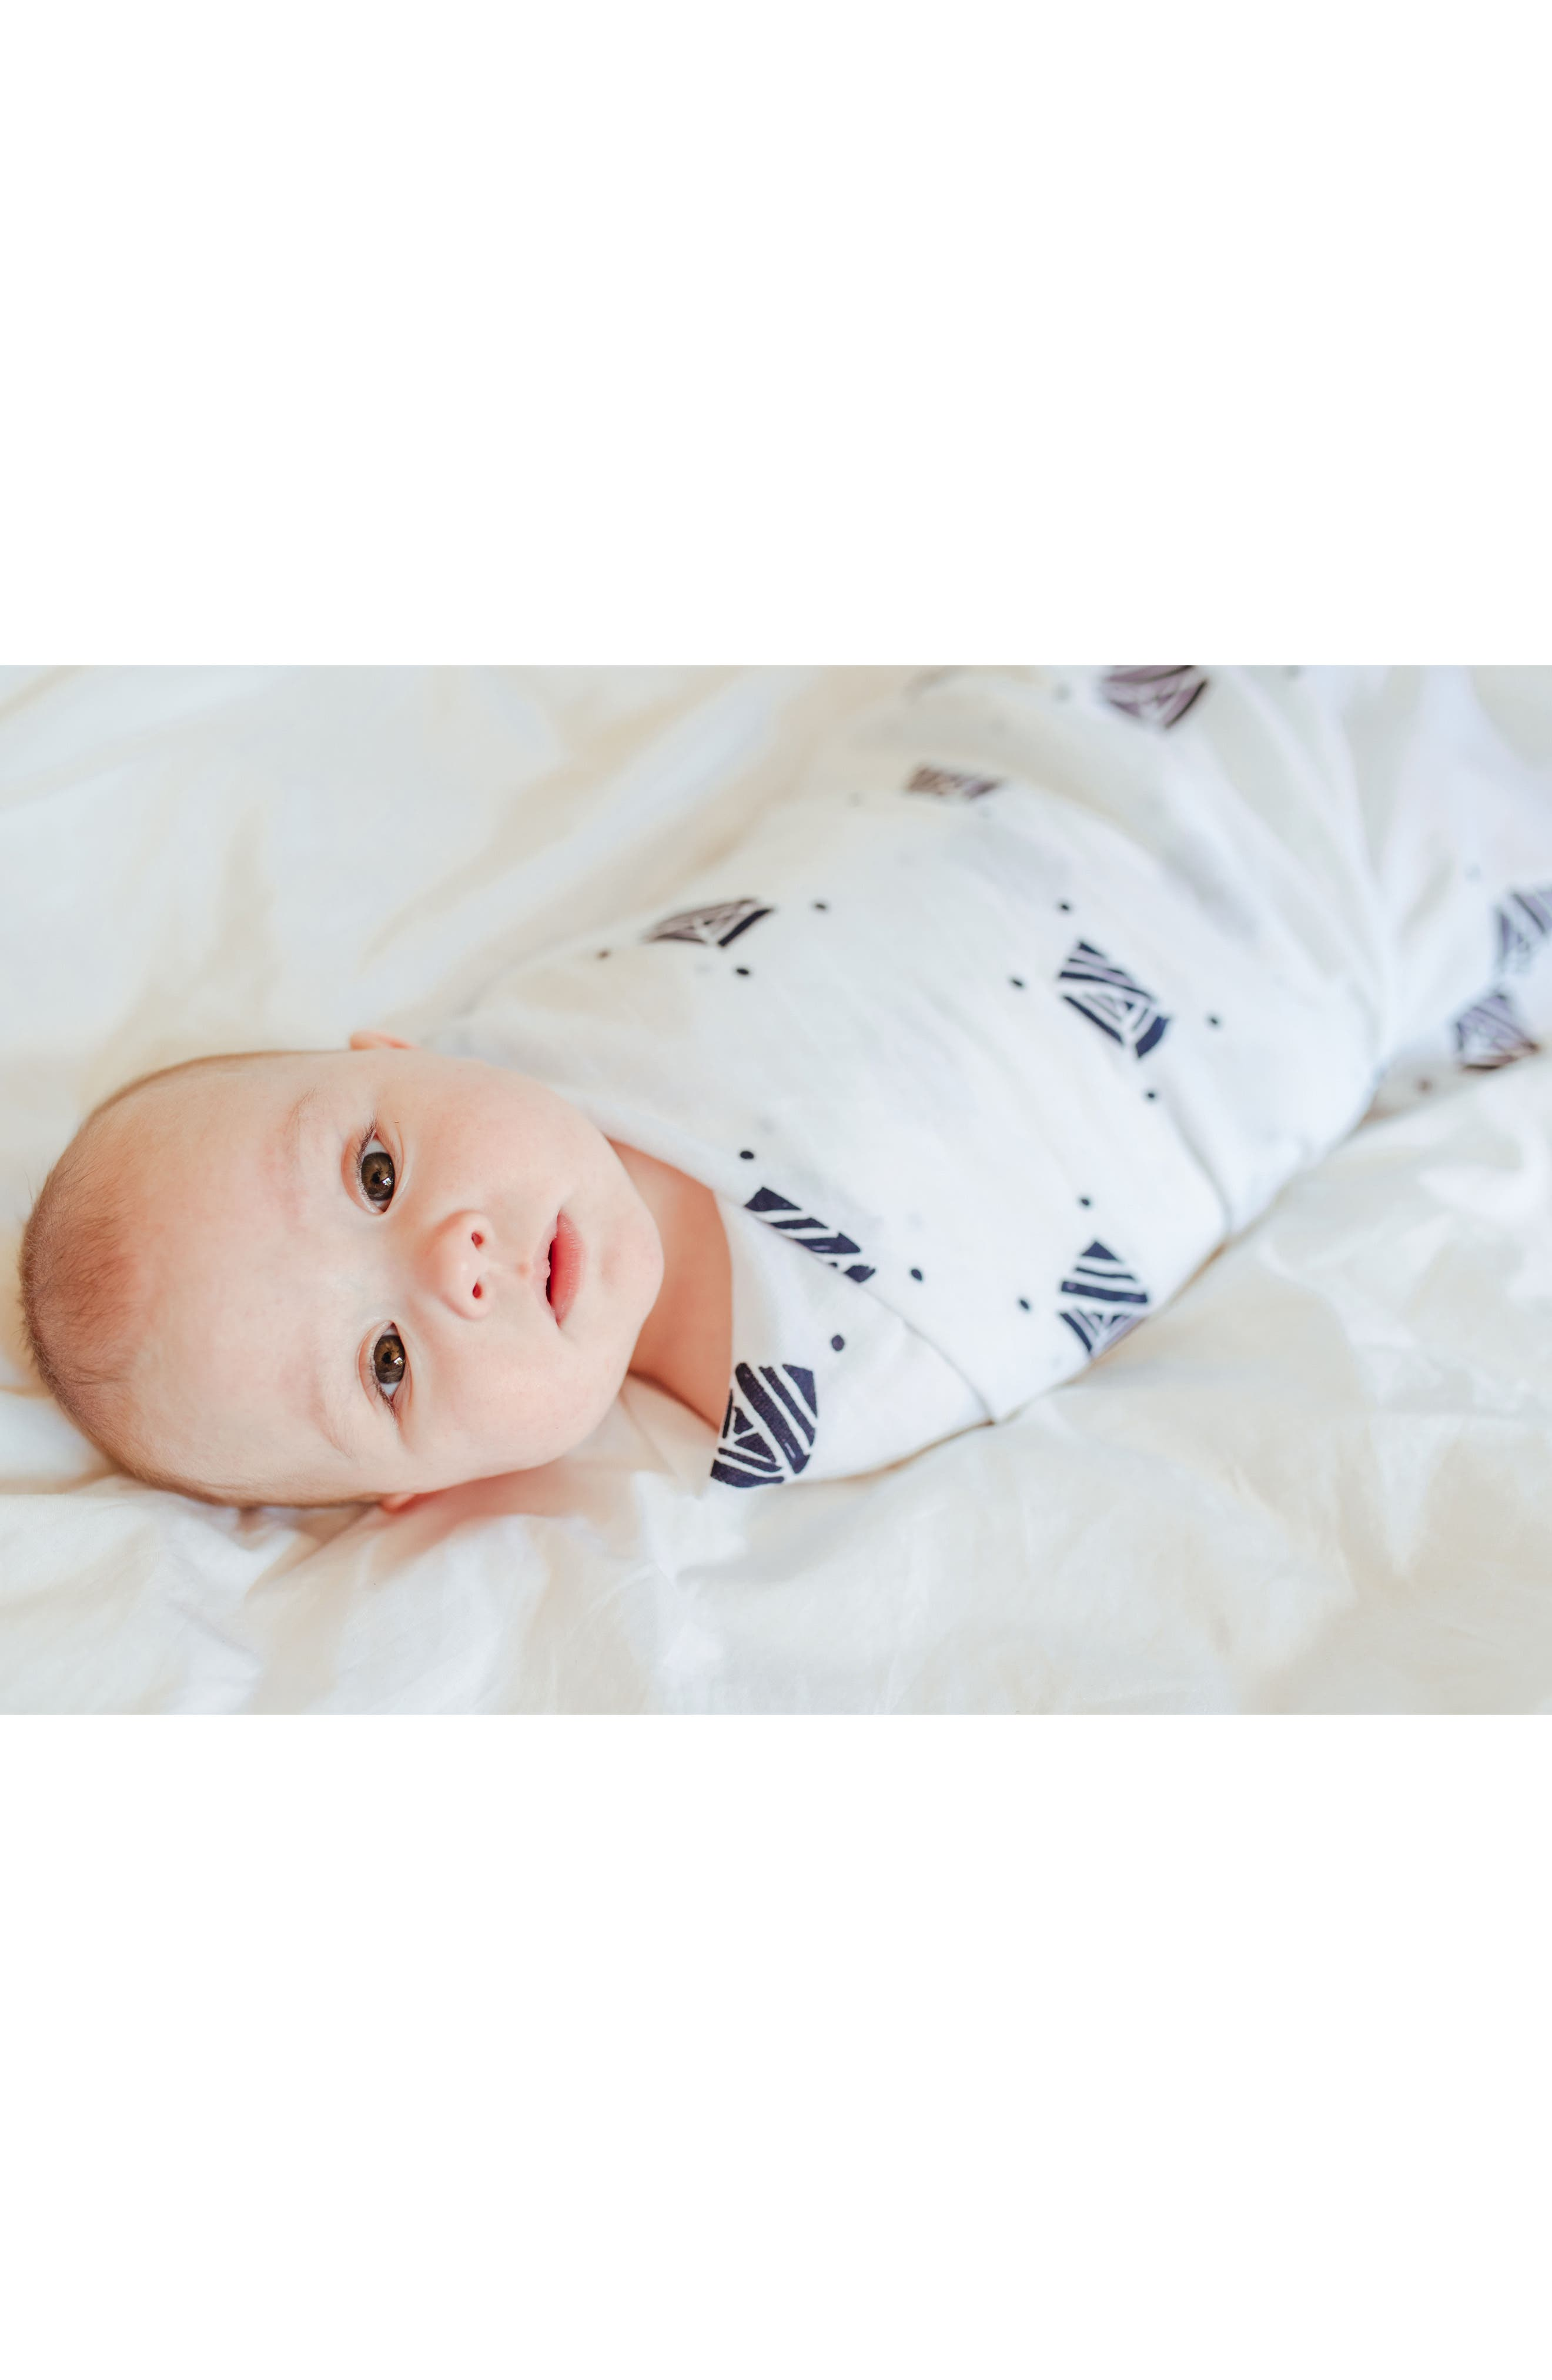 Urban Geometry 2-Pack Organic Cotton Swaddle Blankets,                             Alternate thumbnail 6, color,                             Navy